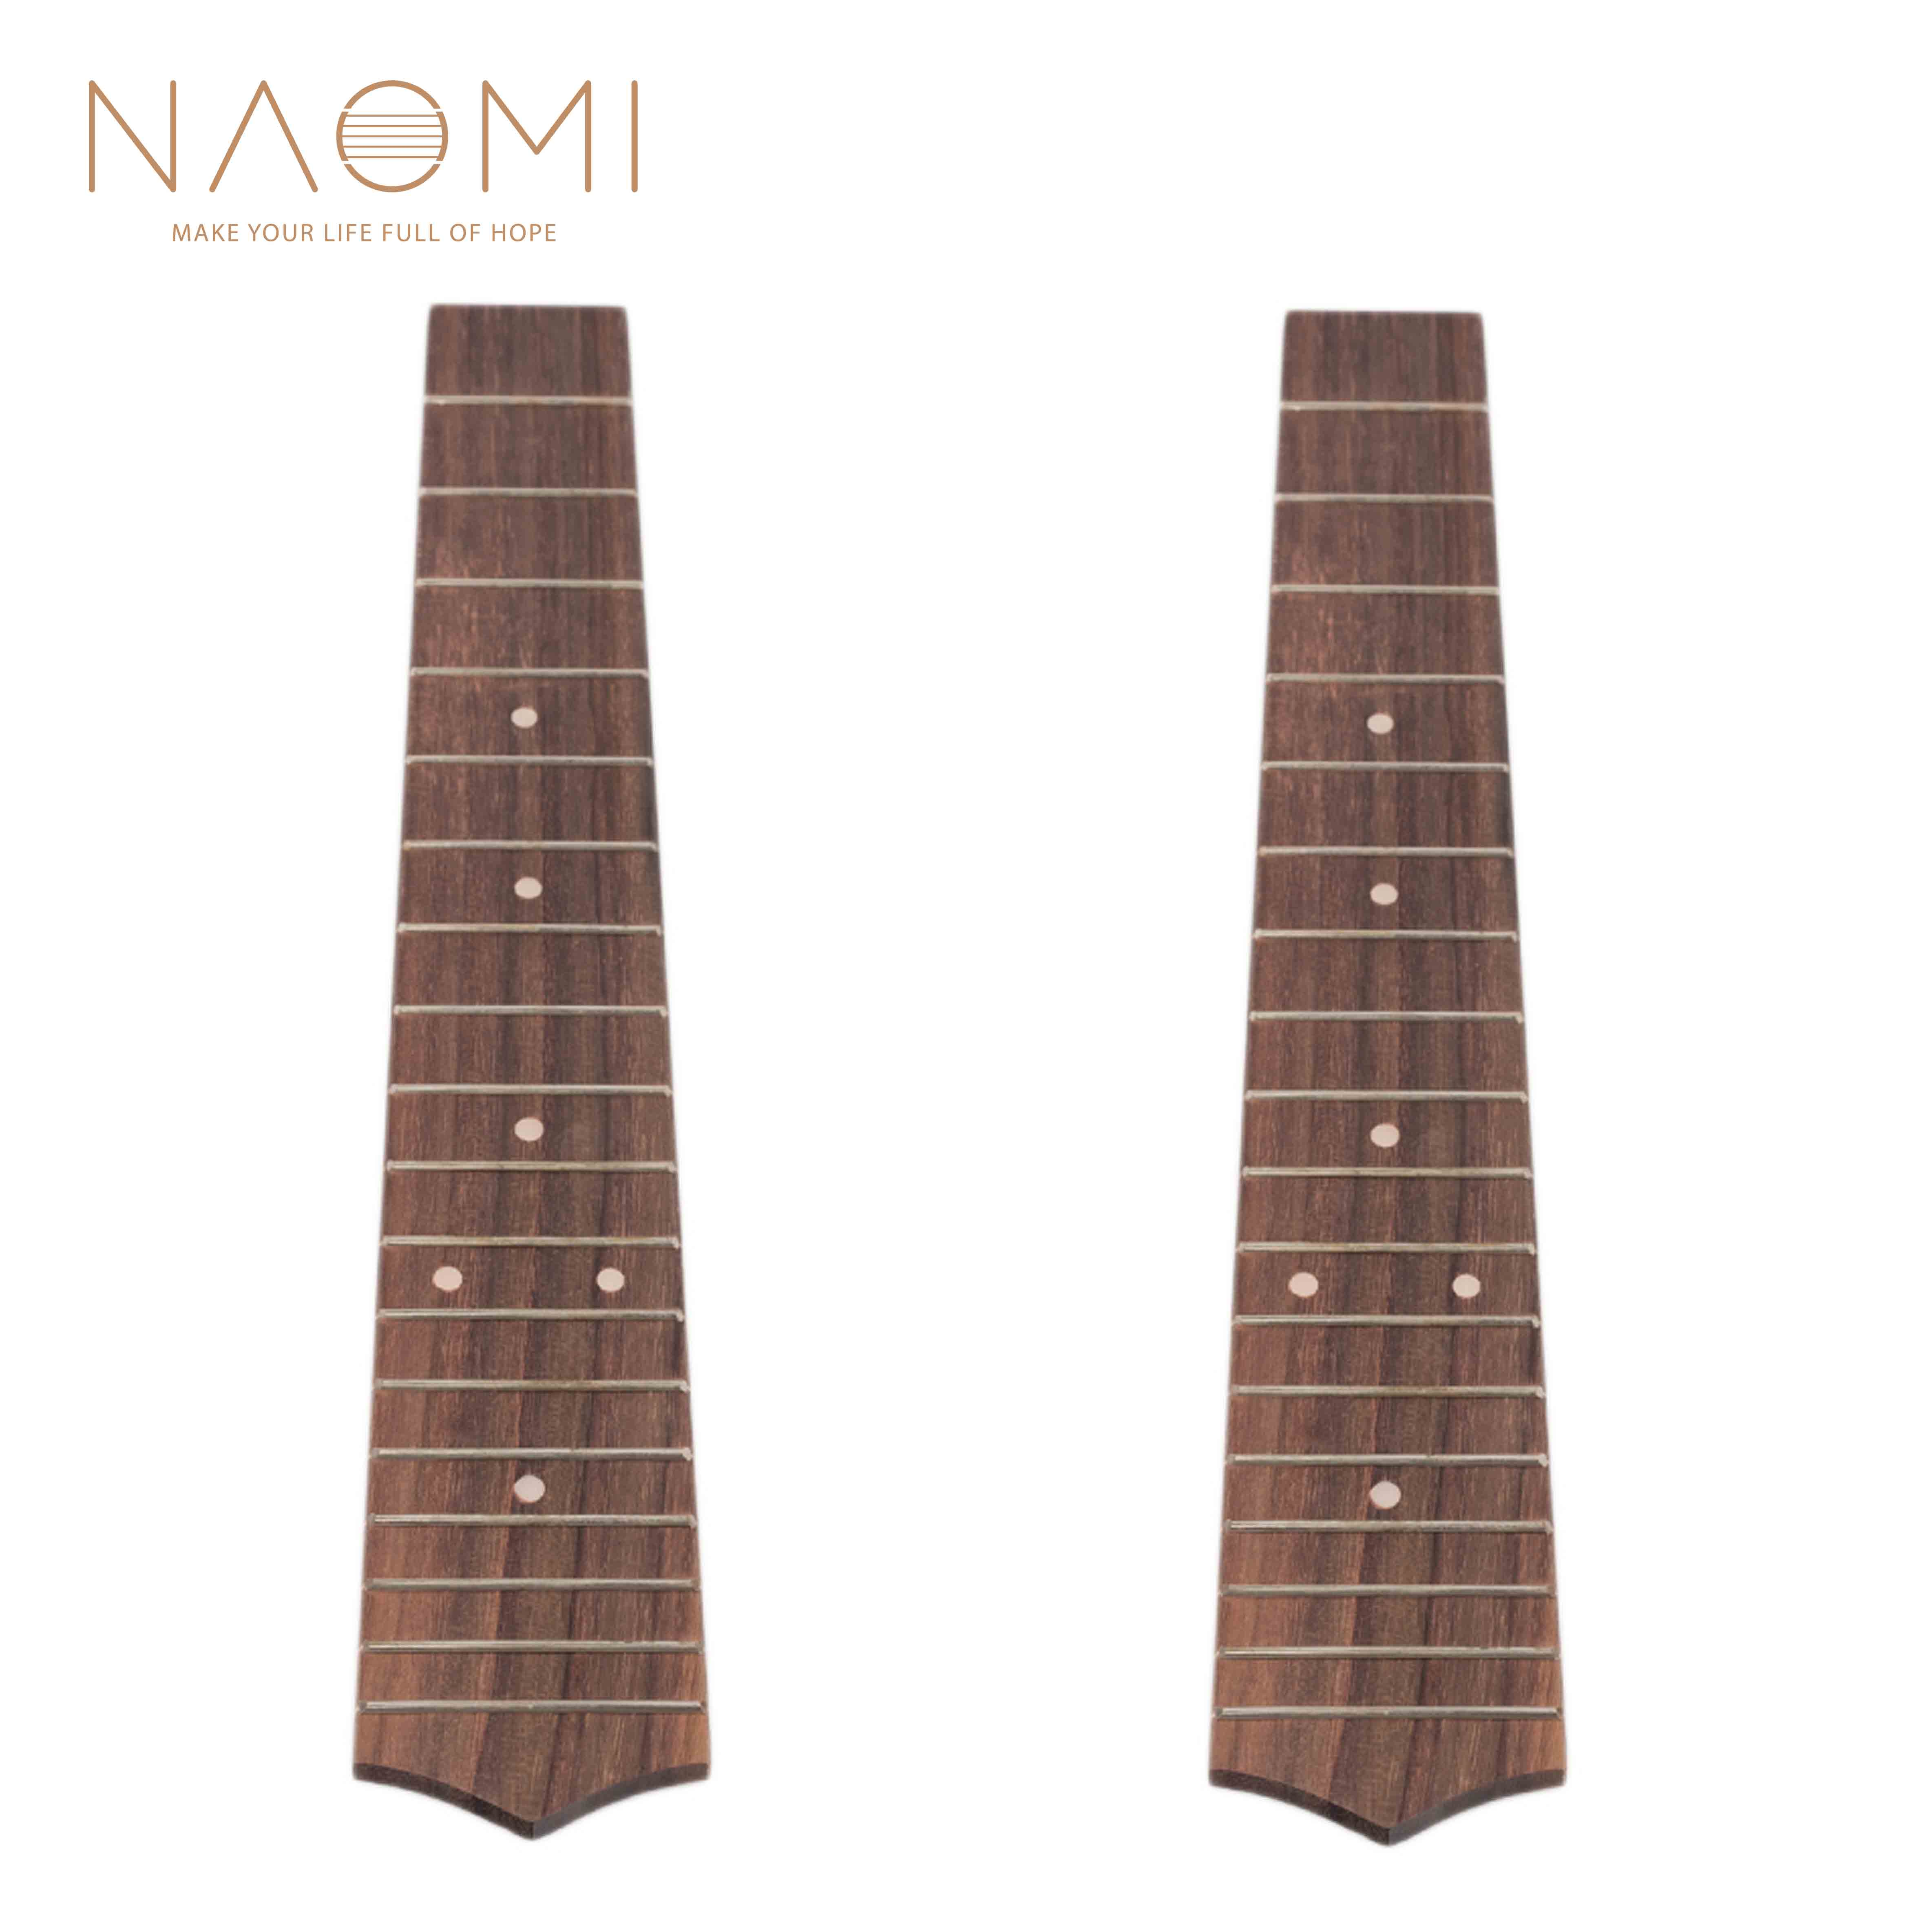 Stringed Instruments Sports & Entertainment Naomi 2 Pcs Ueulele Fretboard 26 Inch Tenor Ukulele Hawaii Guitar Wood Fretboard Fingerboard 18 Frets Guitar Parts Accessories Strong Packing